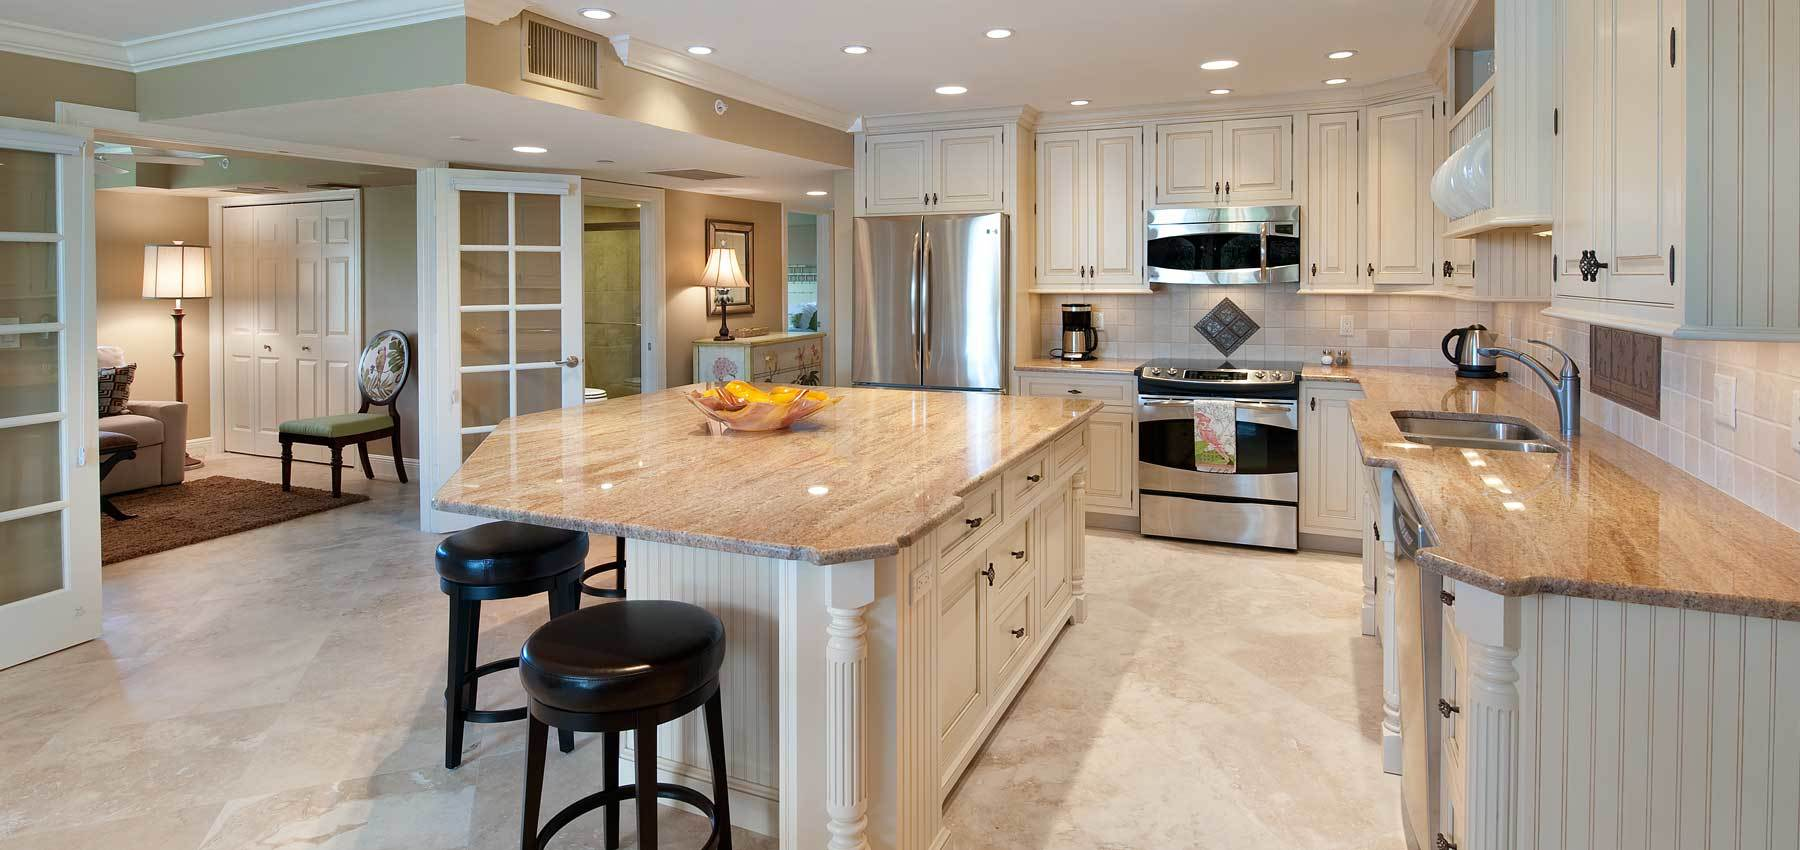 Kitchen remodeling kgt remodeling for Remodeling kitchen cabinets ideas